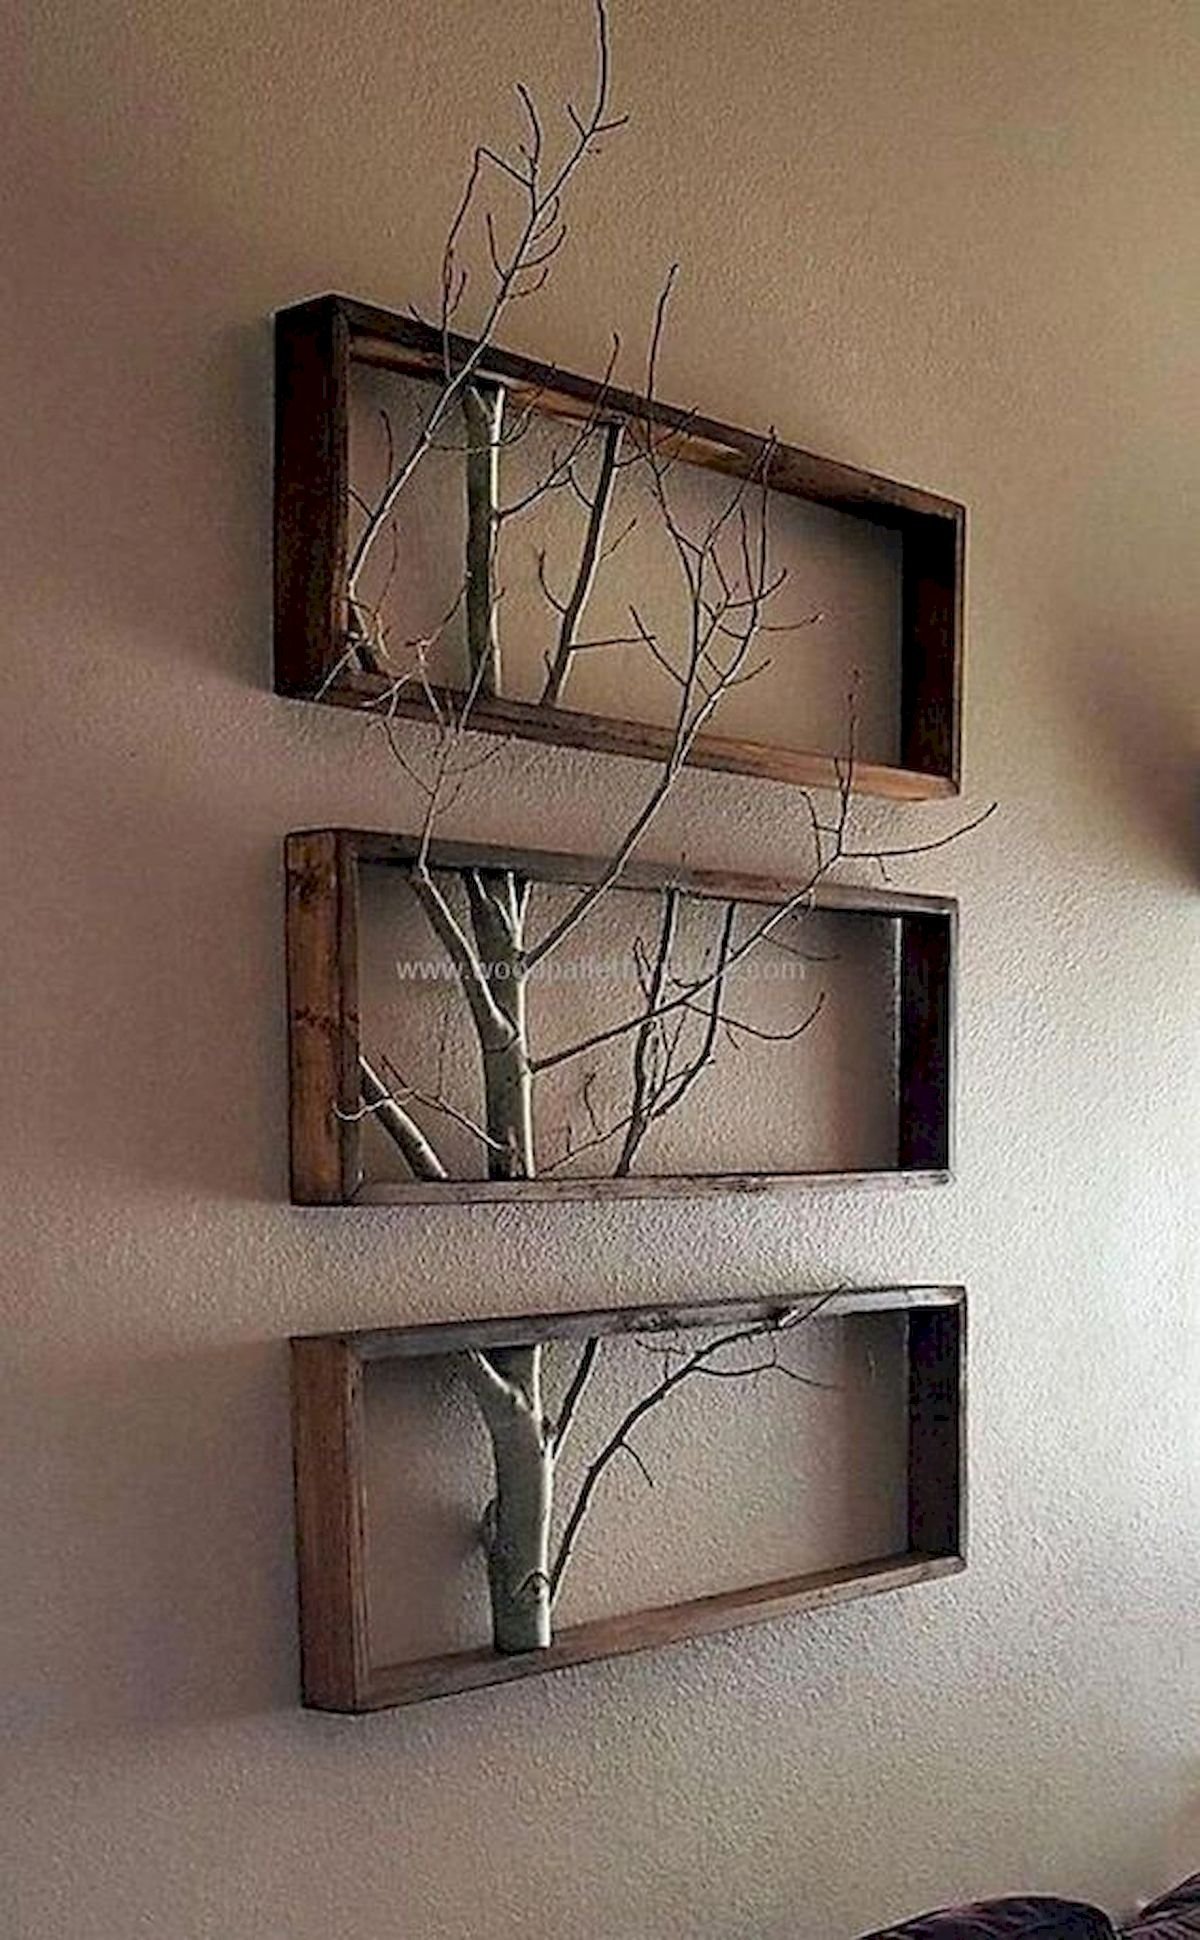 60 Easy DIY Wood Projects for Beginners (5)